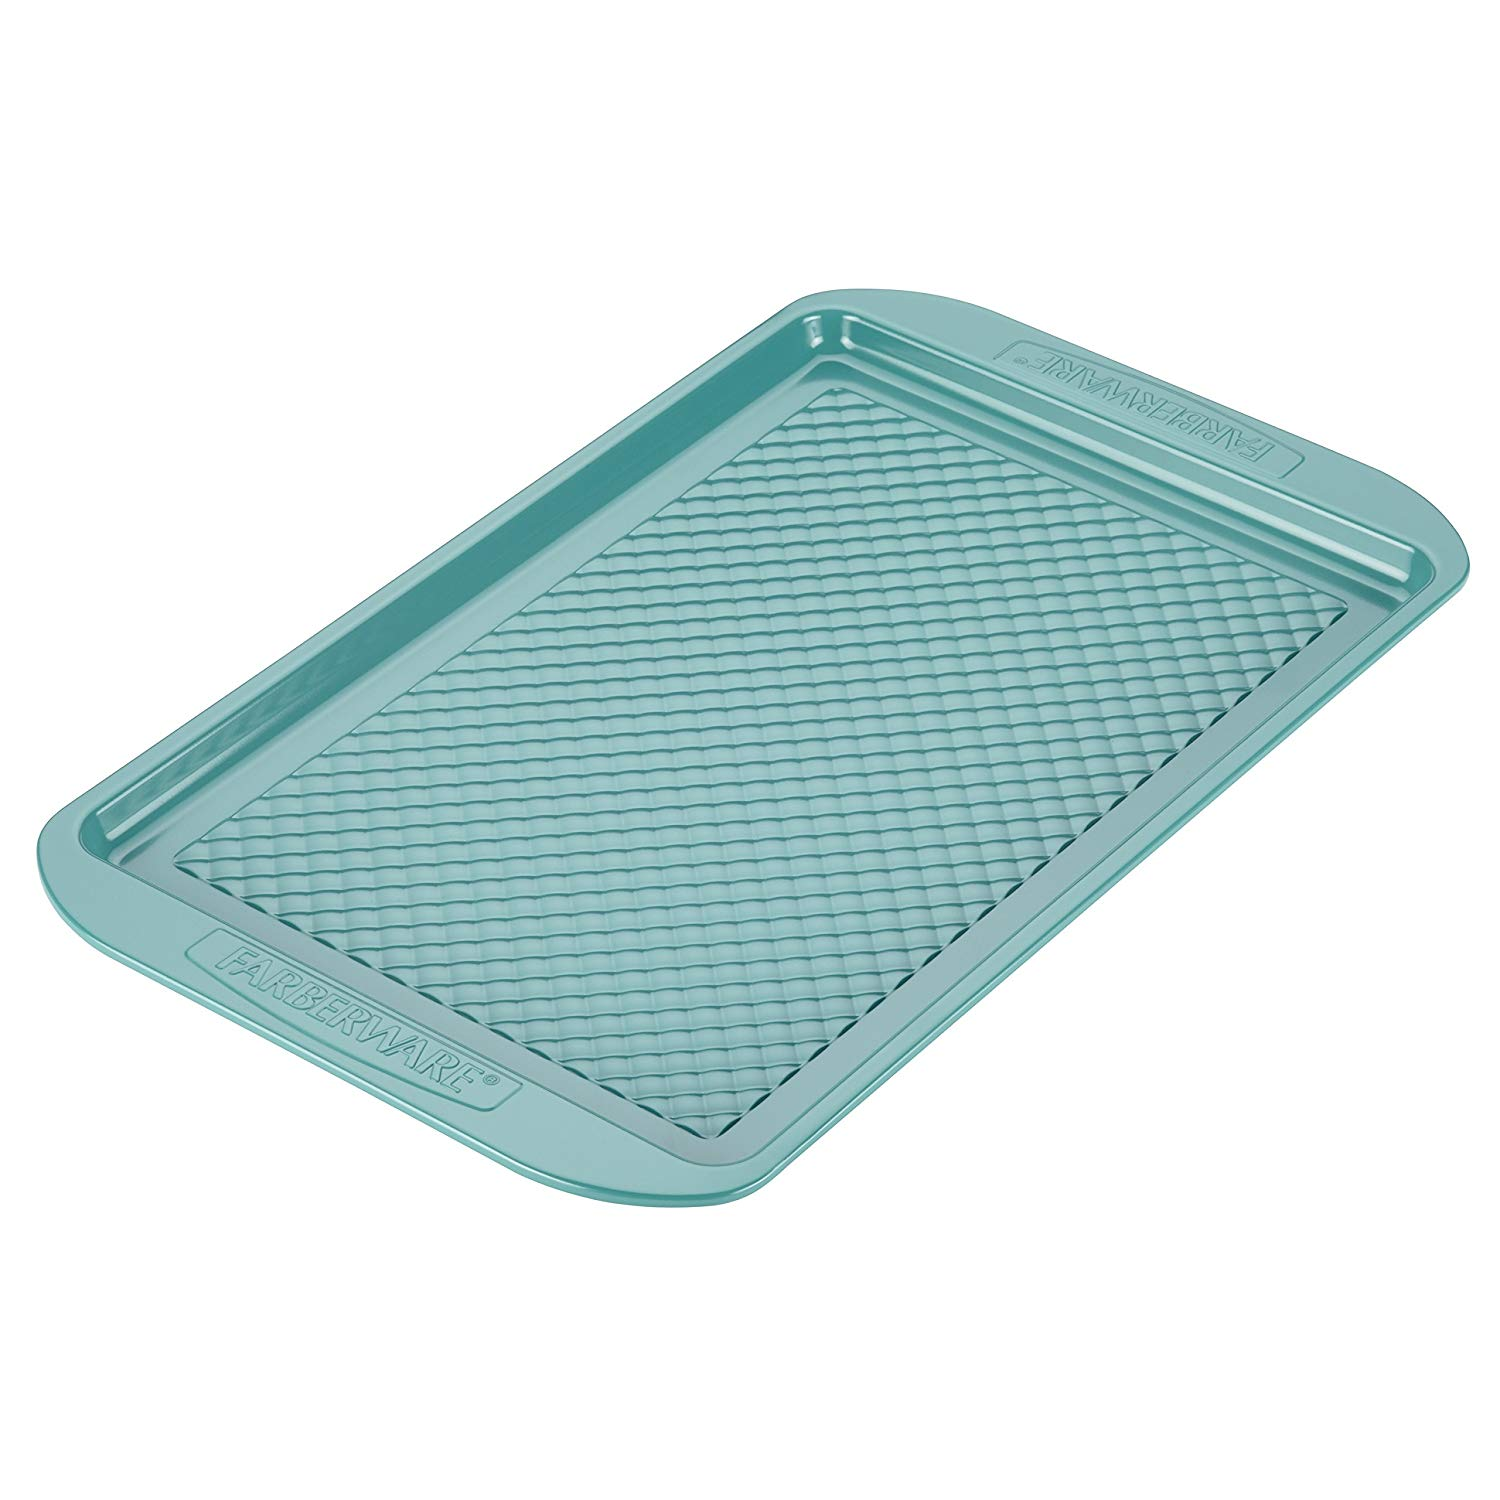 Farberware sheet ceramic nonstick baking sheet